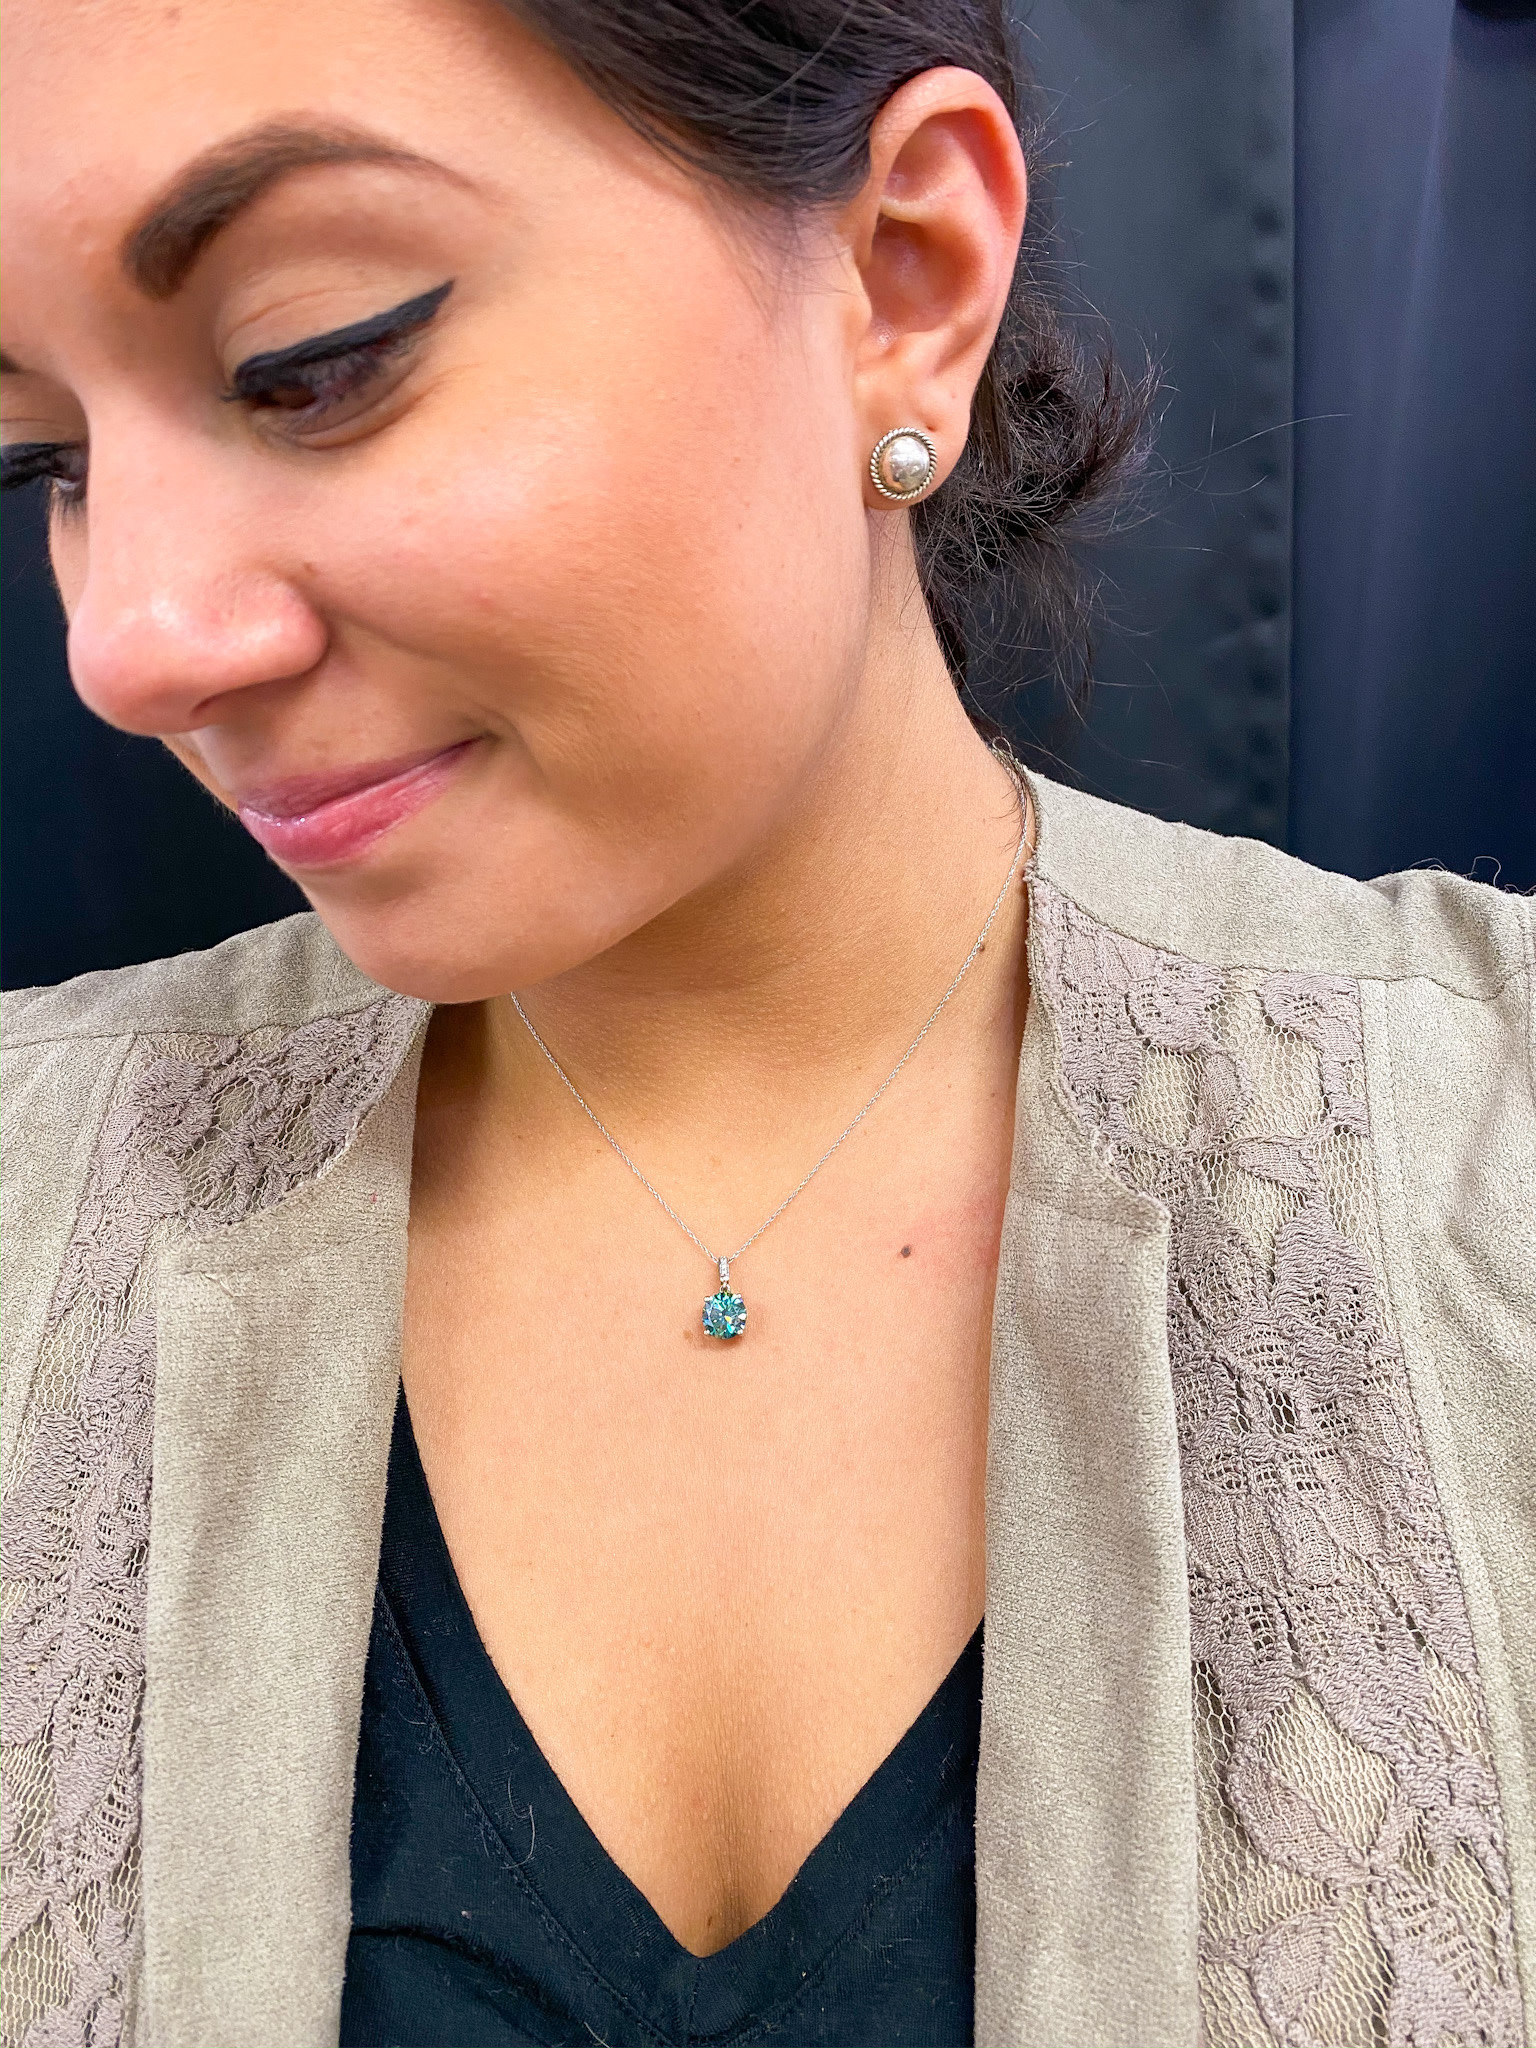 Teal Moissanite Solitaire Necklace